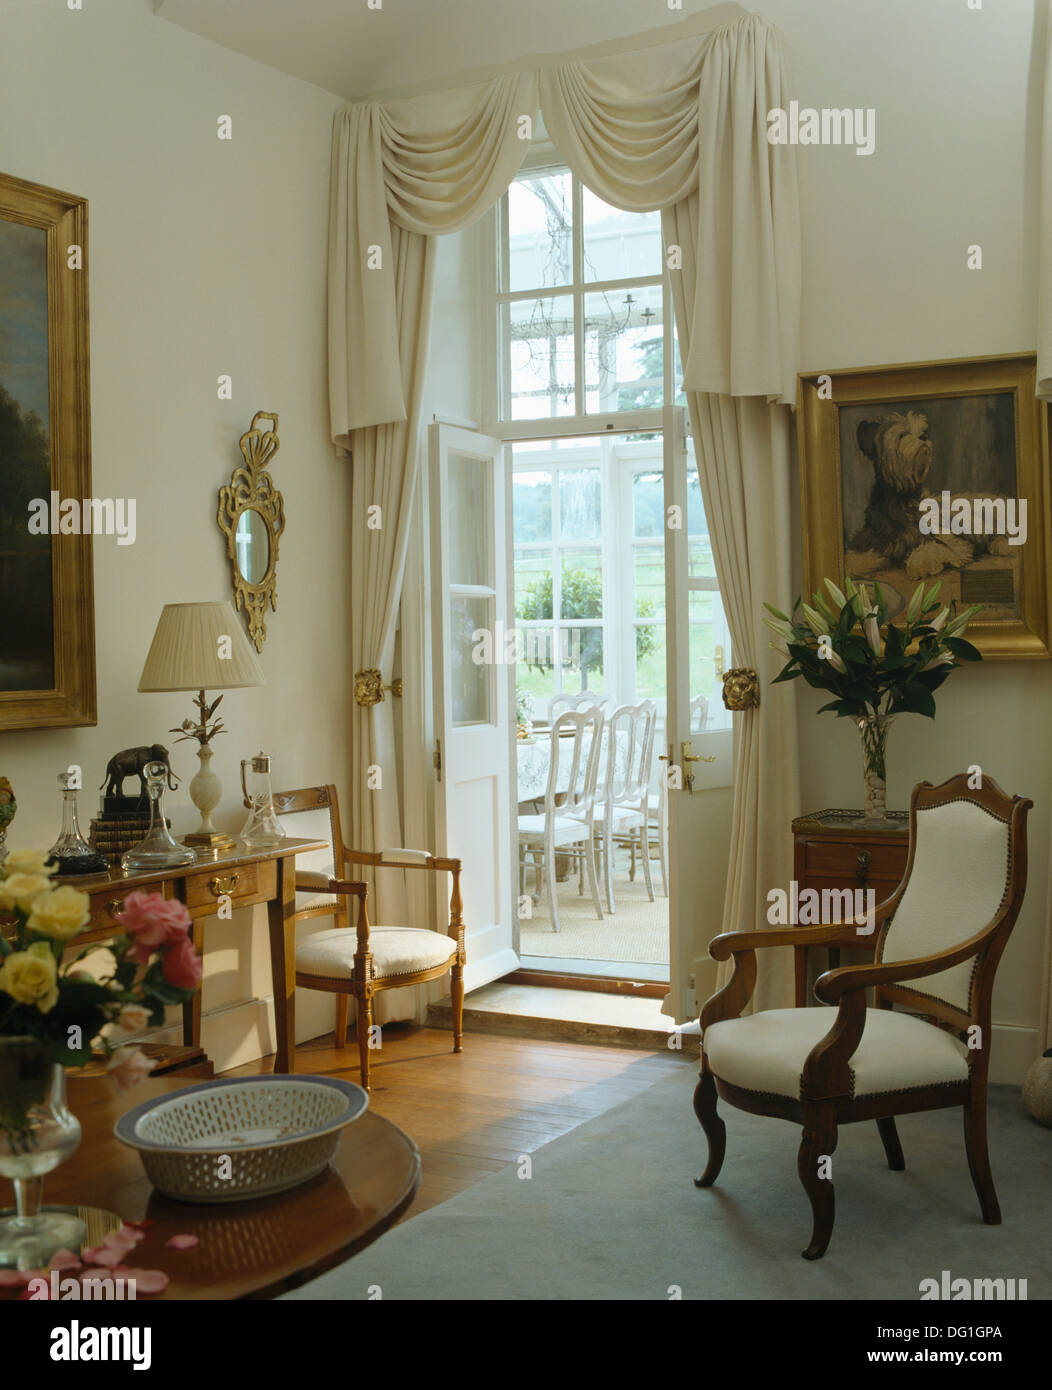 Cream Upholstered Chair In Country Drawing Room With Cream